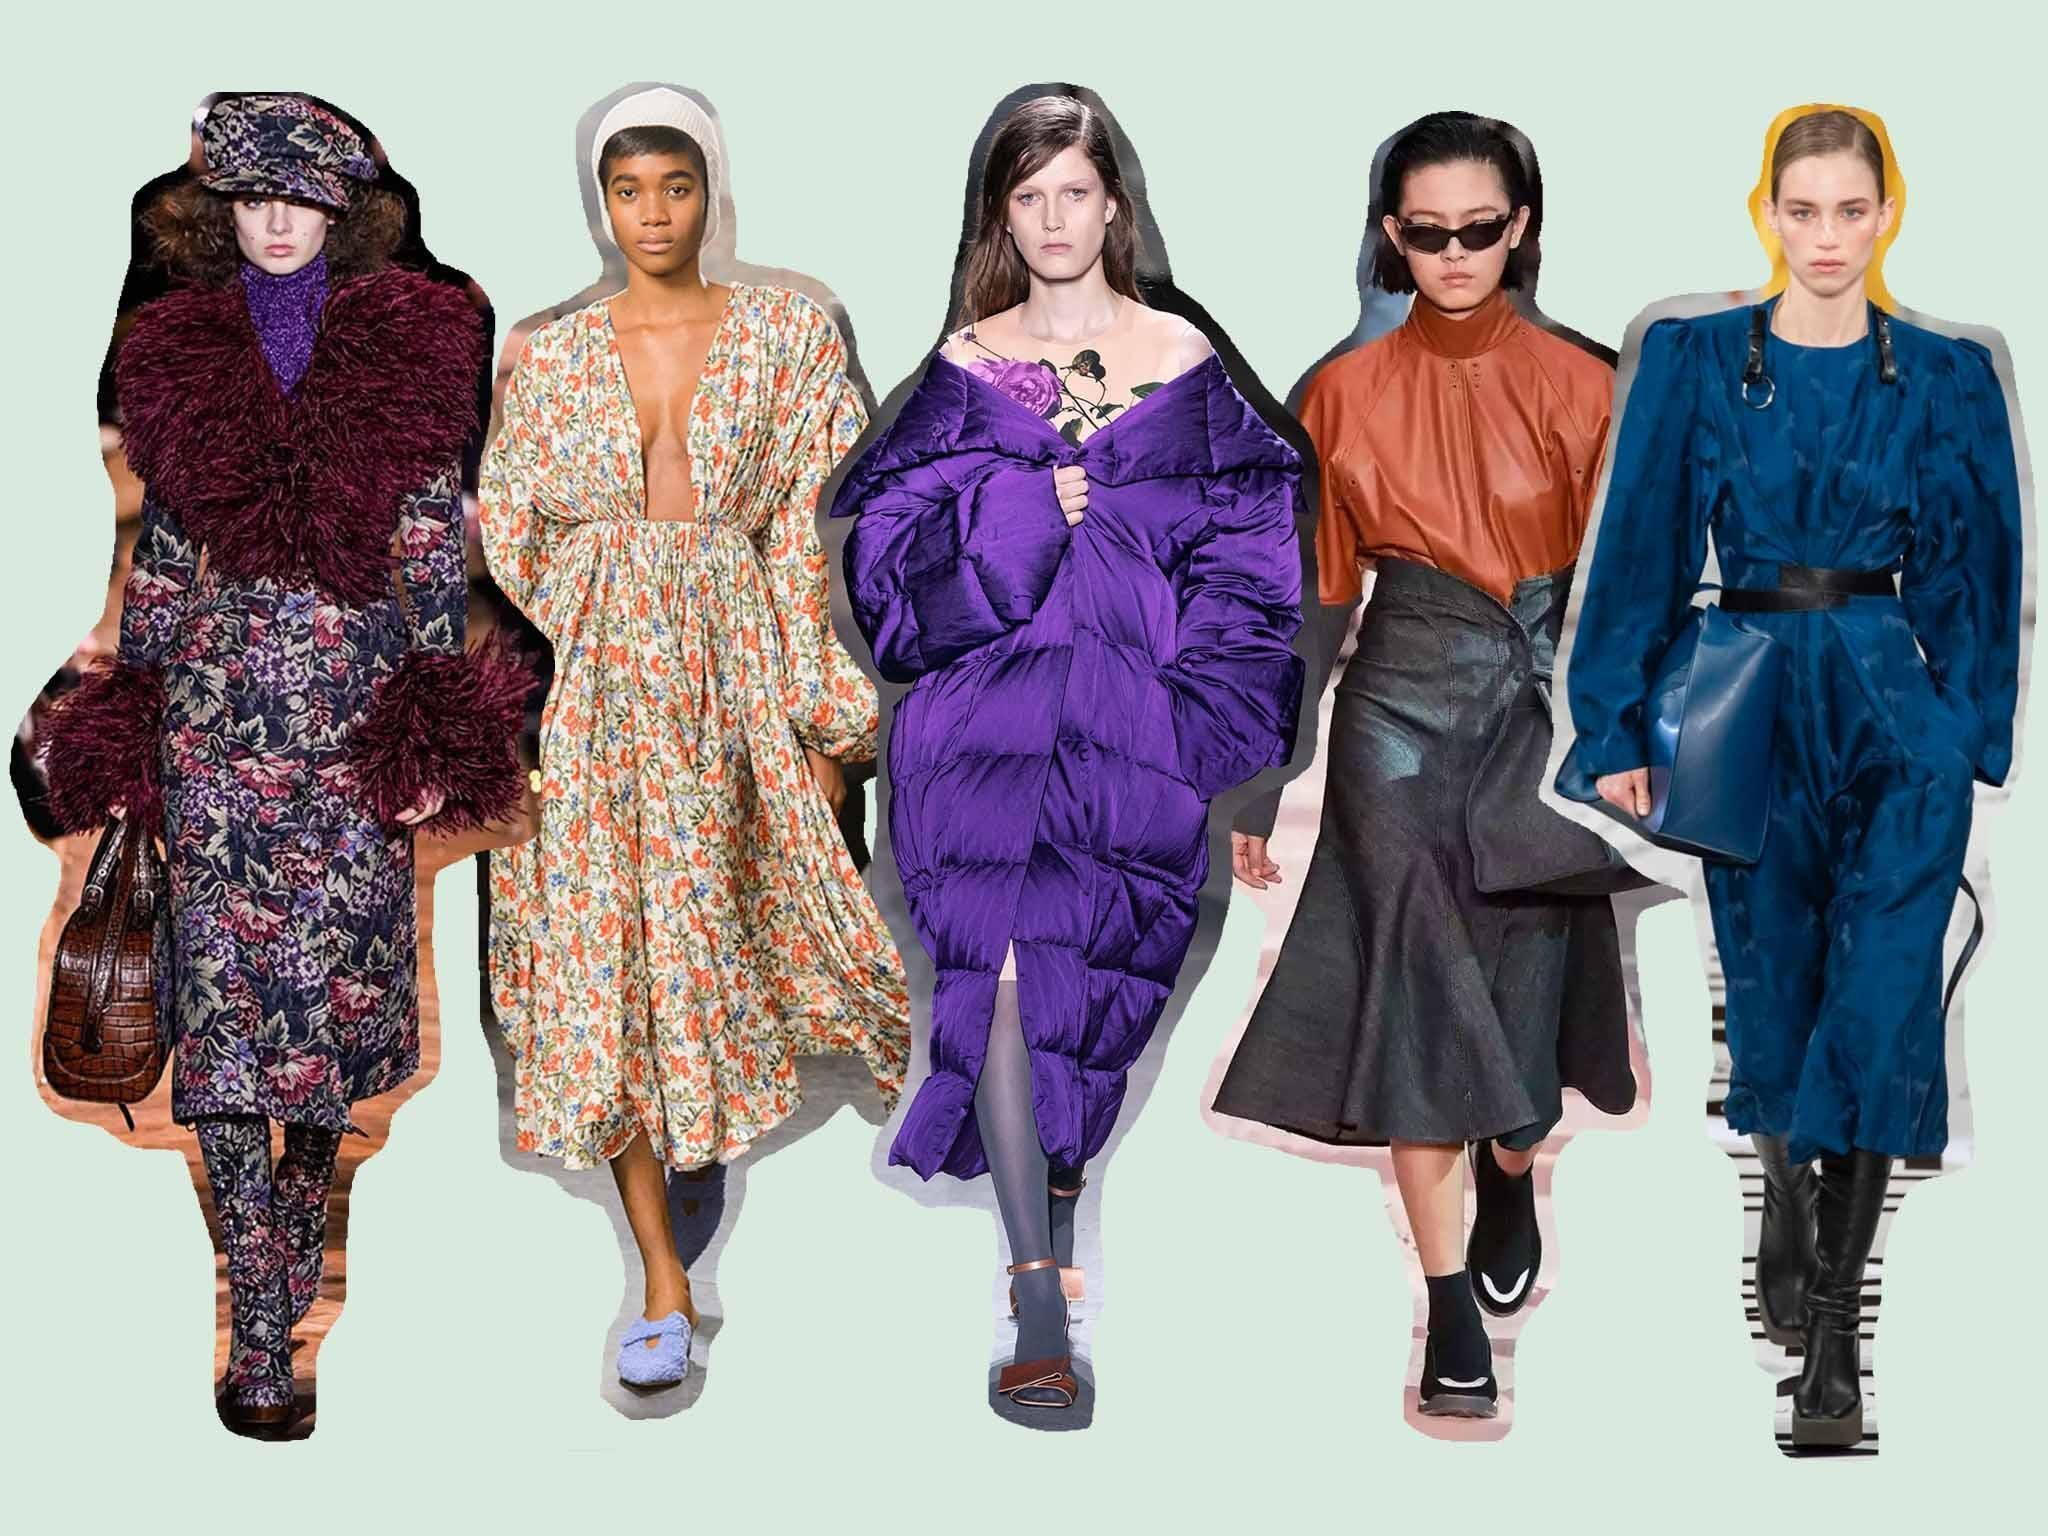 Autumn Winter 2019 Fashion Trends You Can Wear Right Now The Independent The Independent